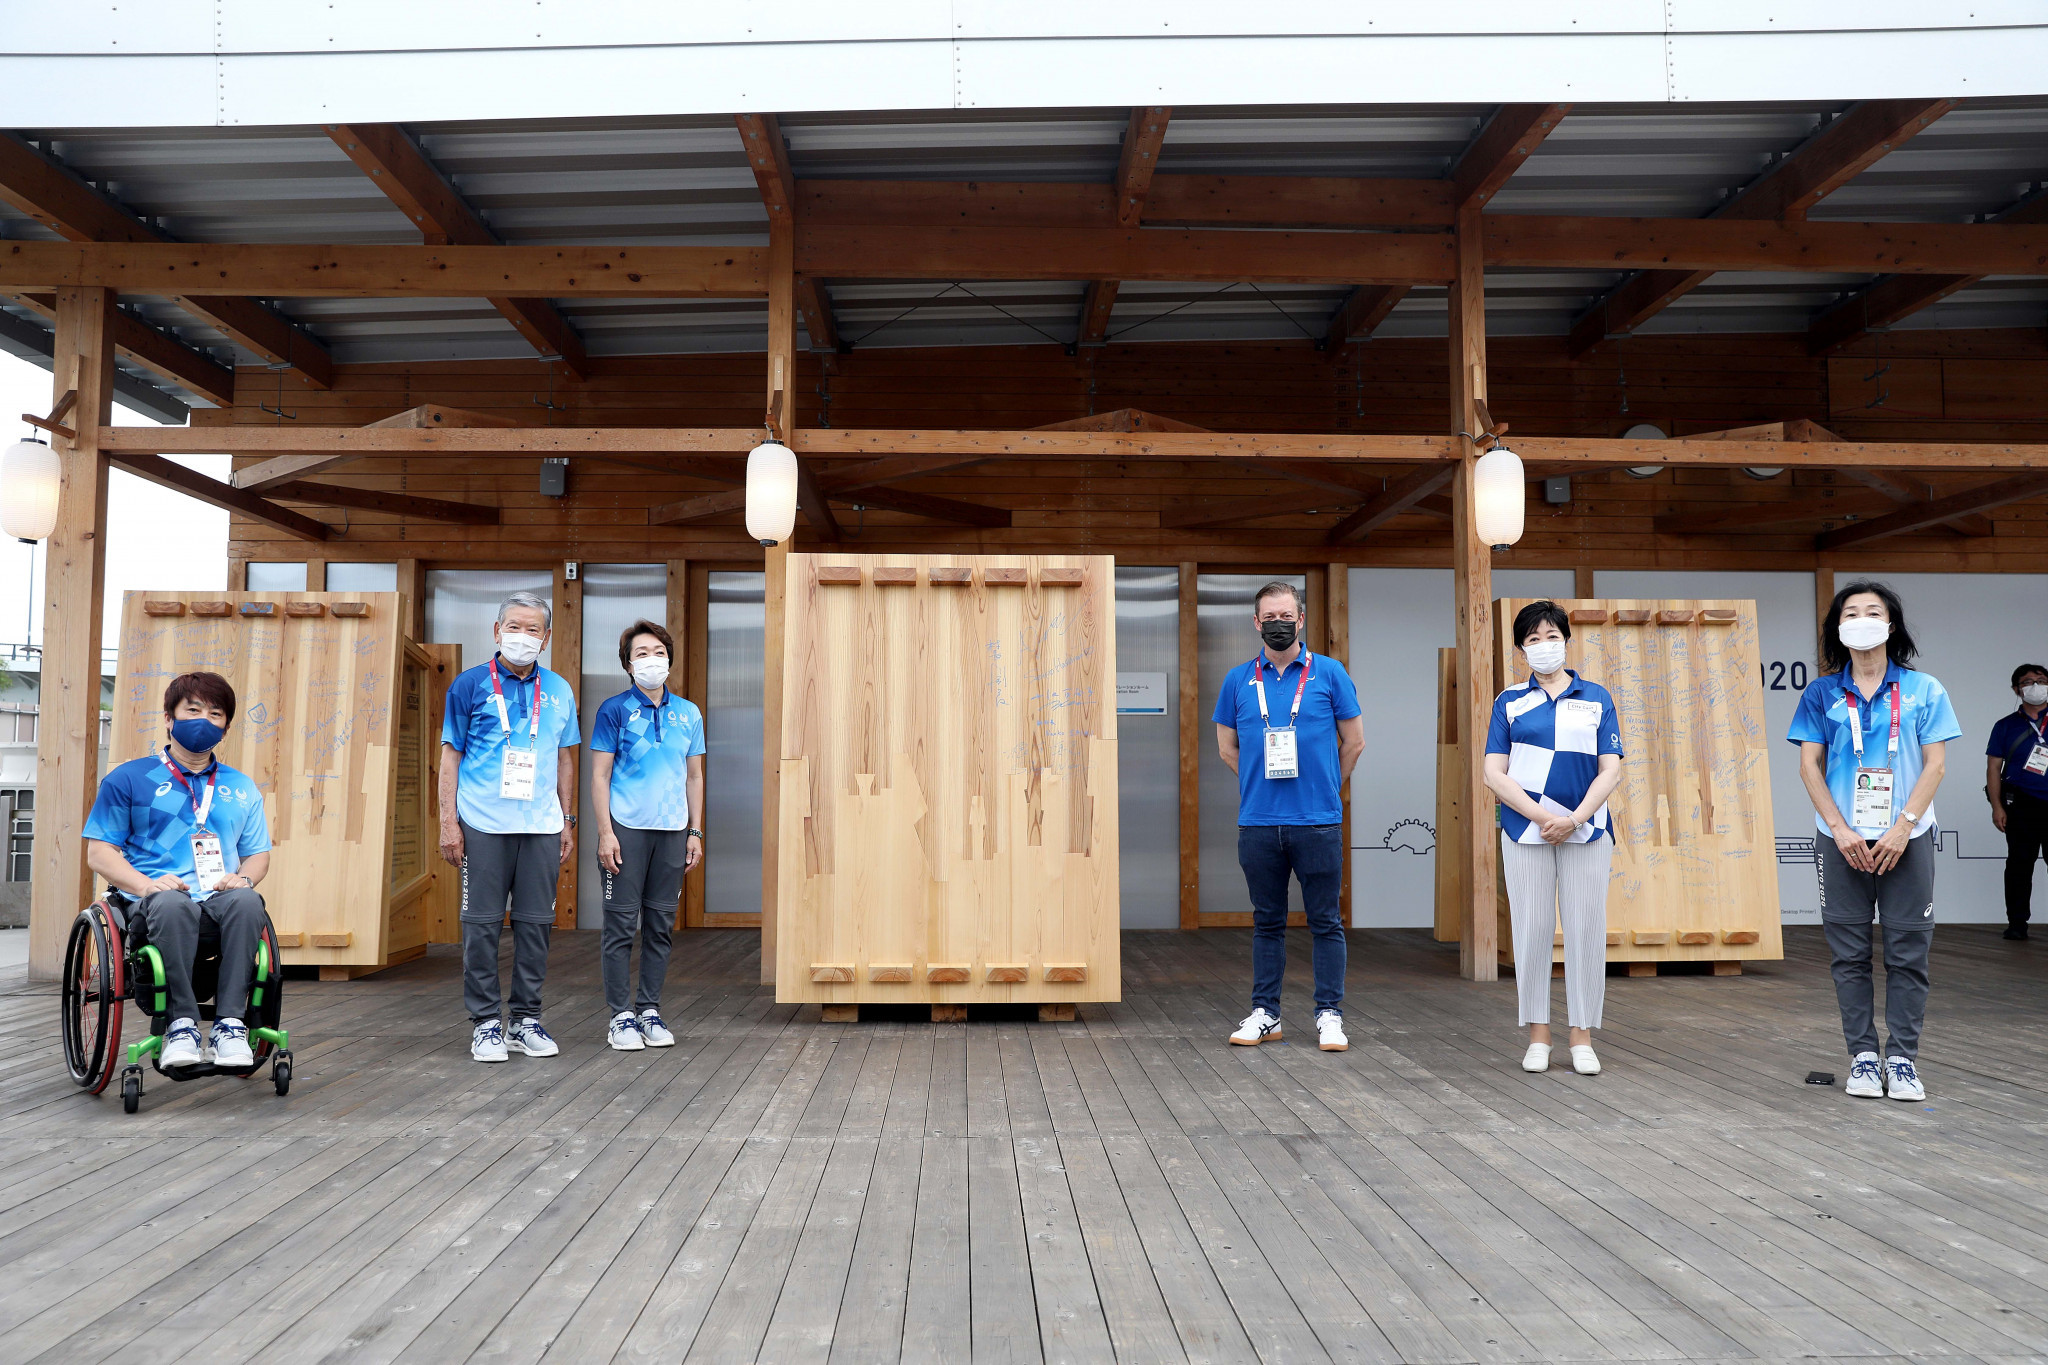 Tokyo 2020 Paralympics Mural unveiled at Athletes' Village during ceremony